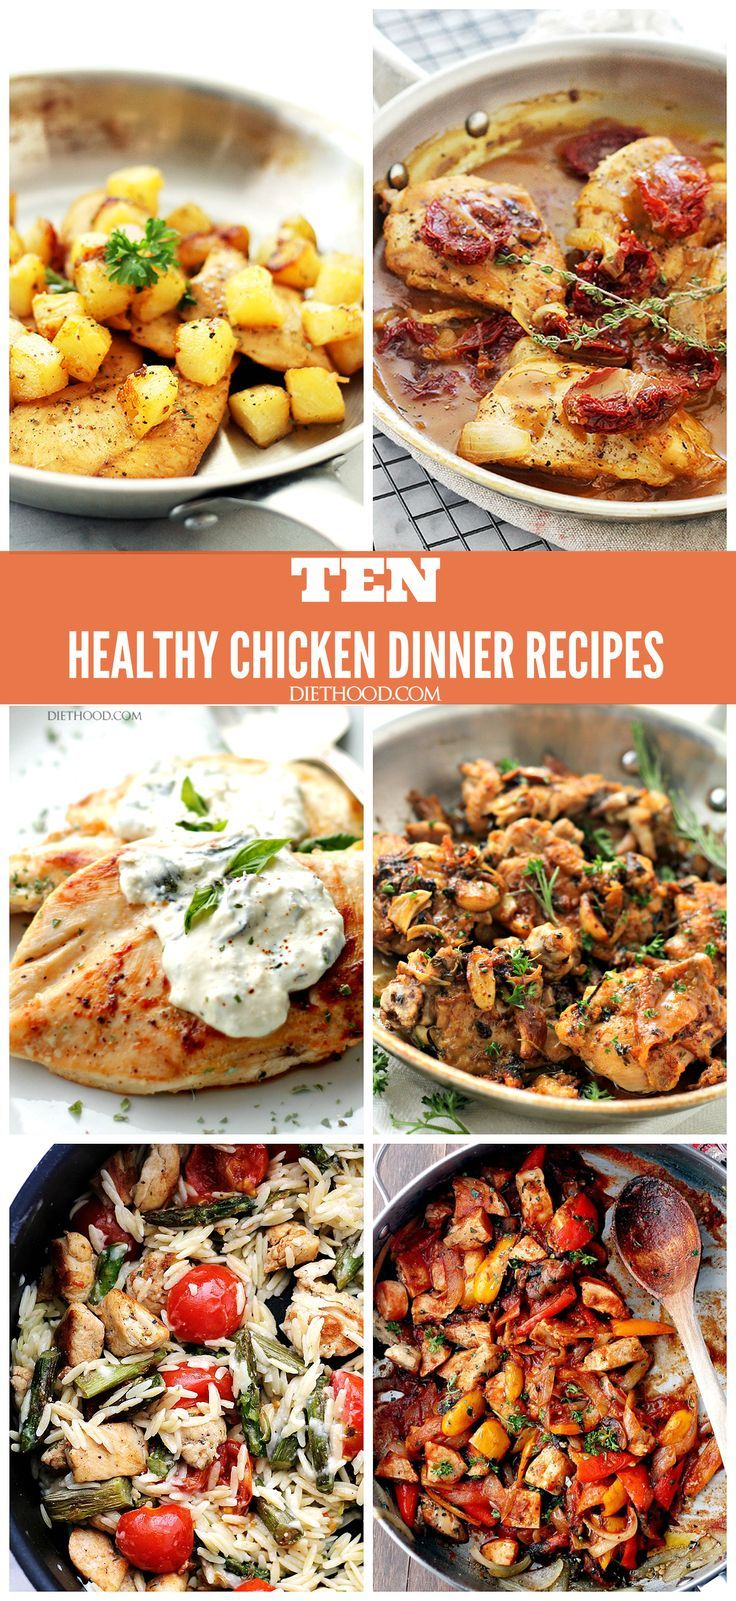 TEN HEALTHY CHICKEN DINNER RECIPES -  A compilation of my favorite Chicken Recipes with under 500 calories per serving! www.diethood.com